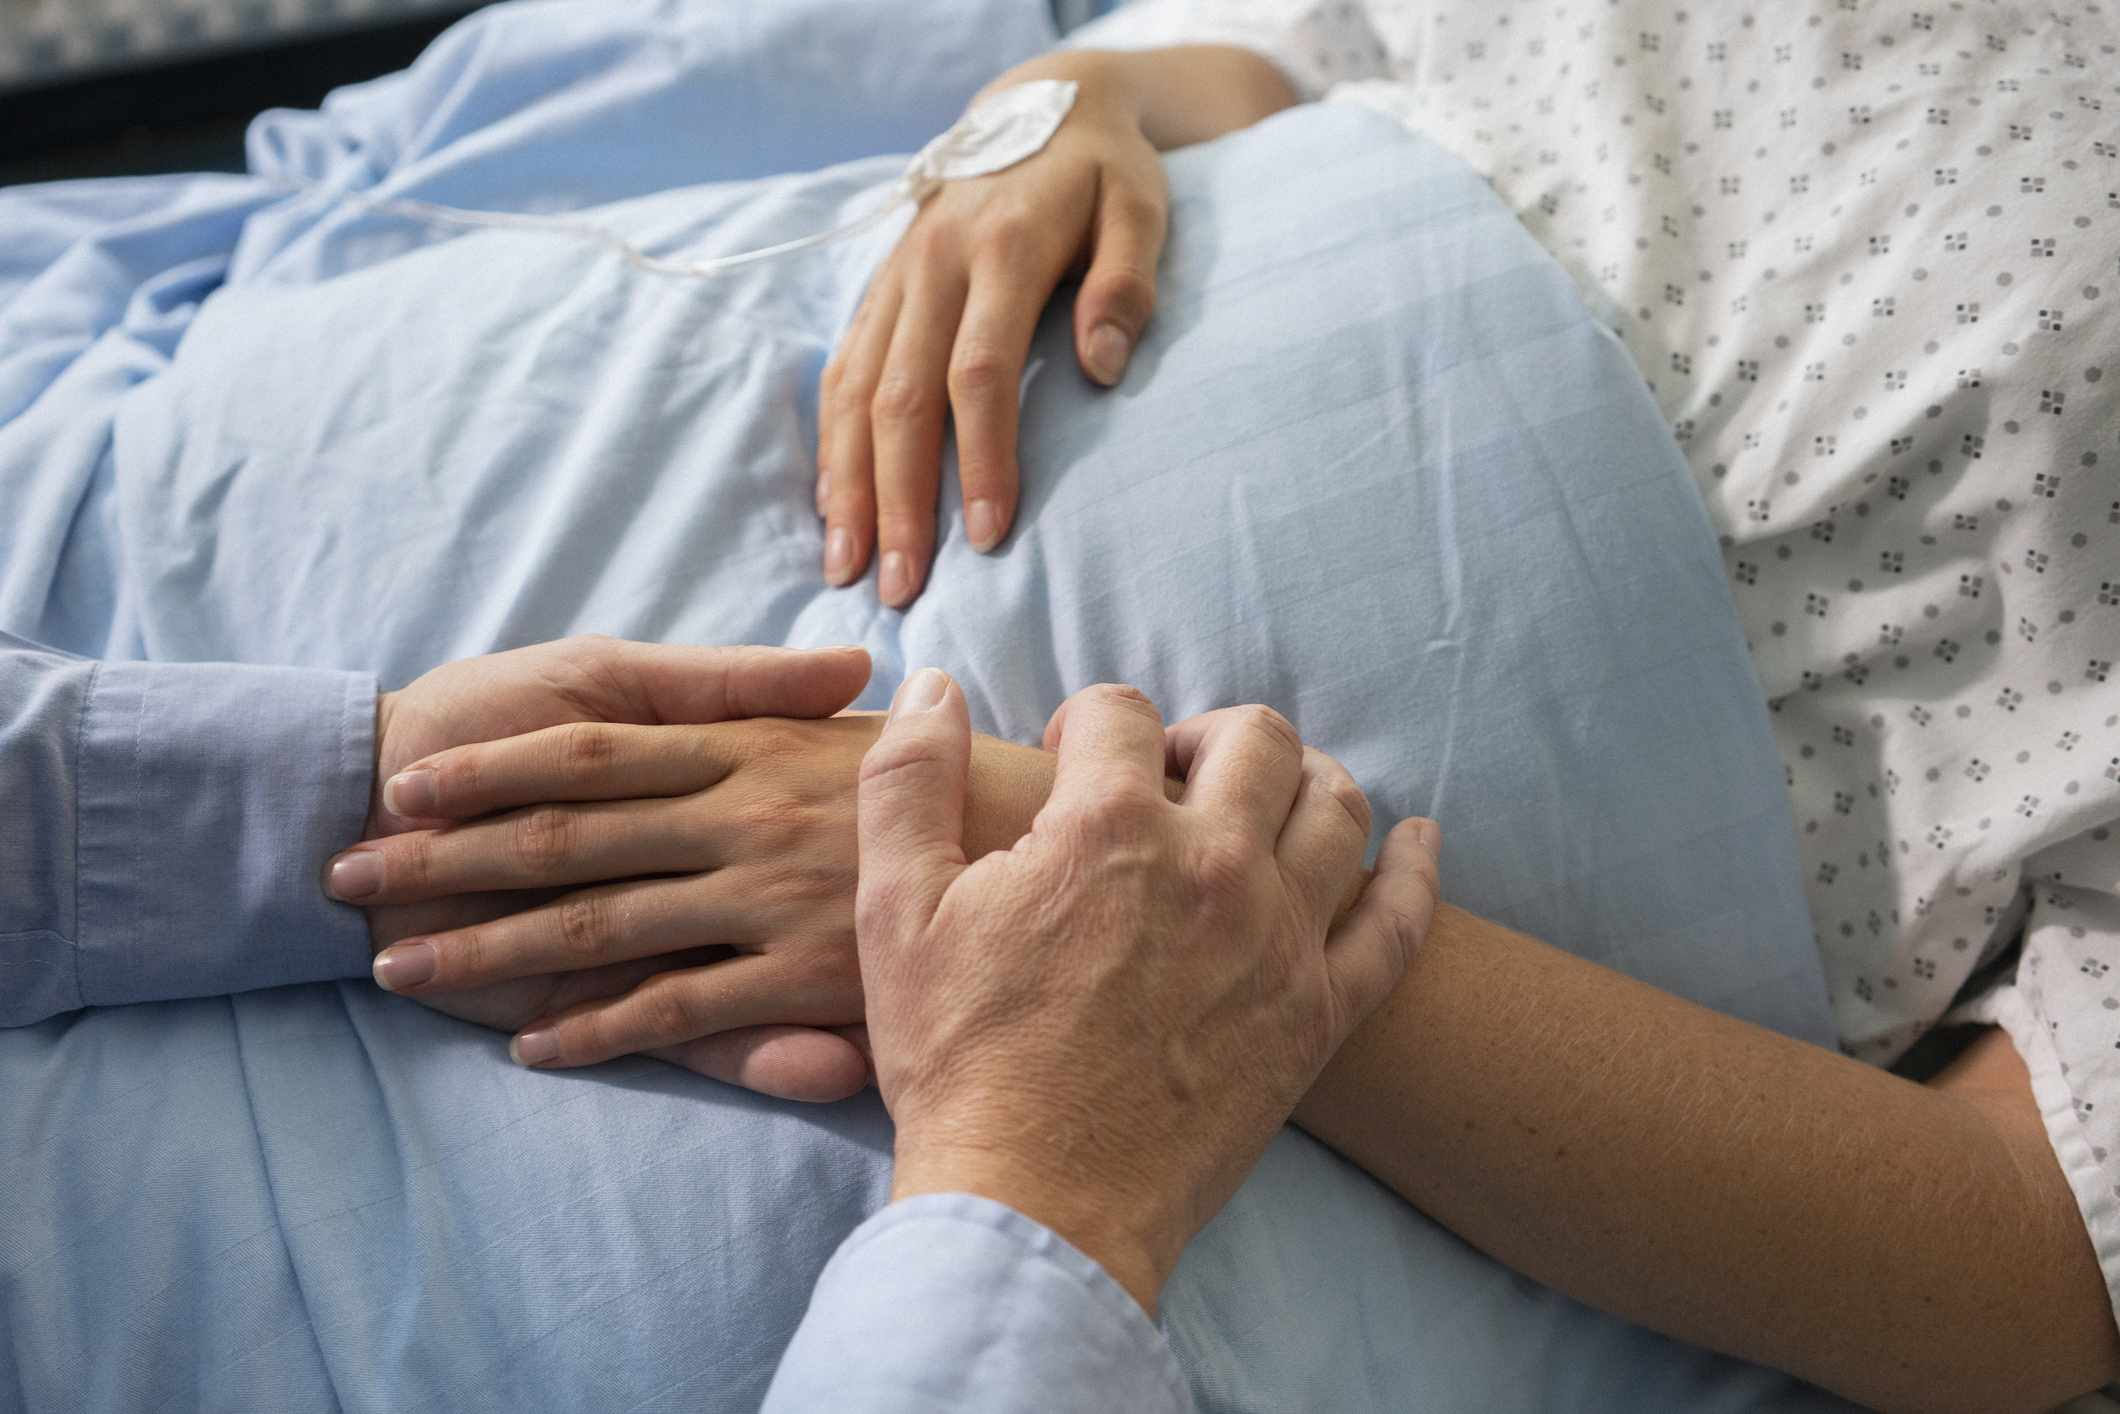 Man comforting female patient recovering in hospital bed